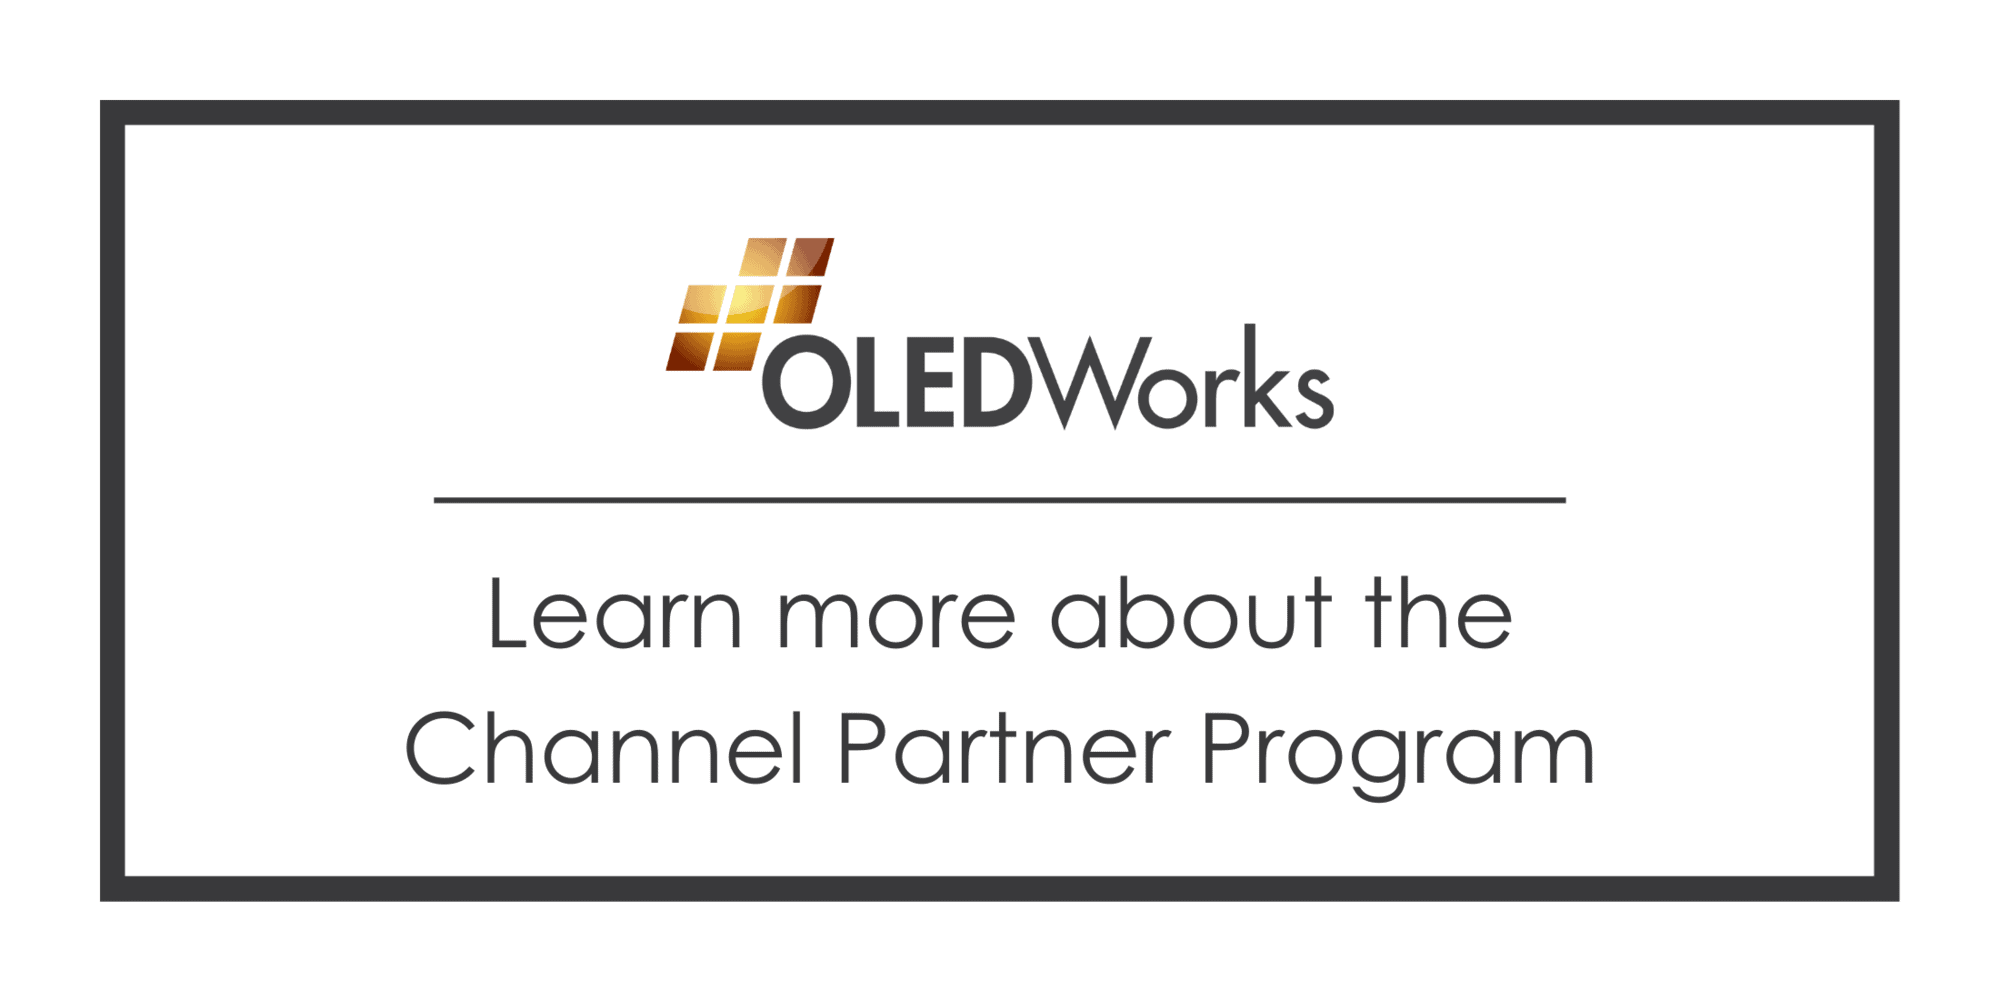 Learn more about the Channel Partner Program | OLEDWorks